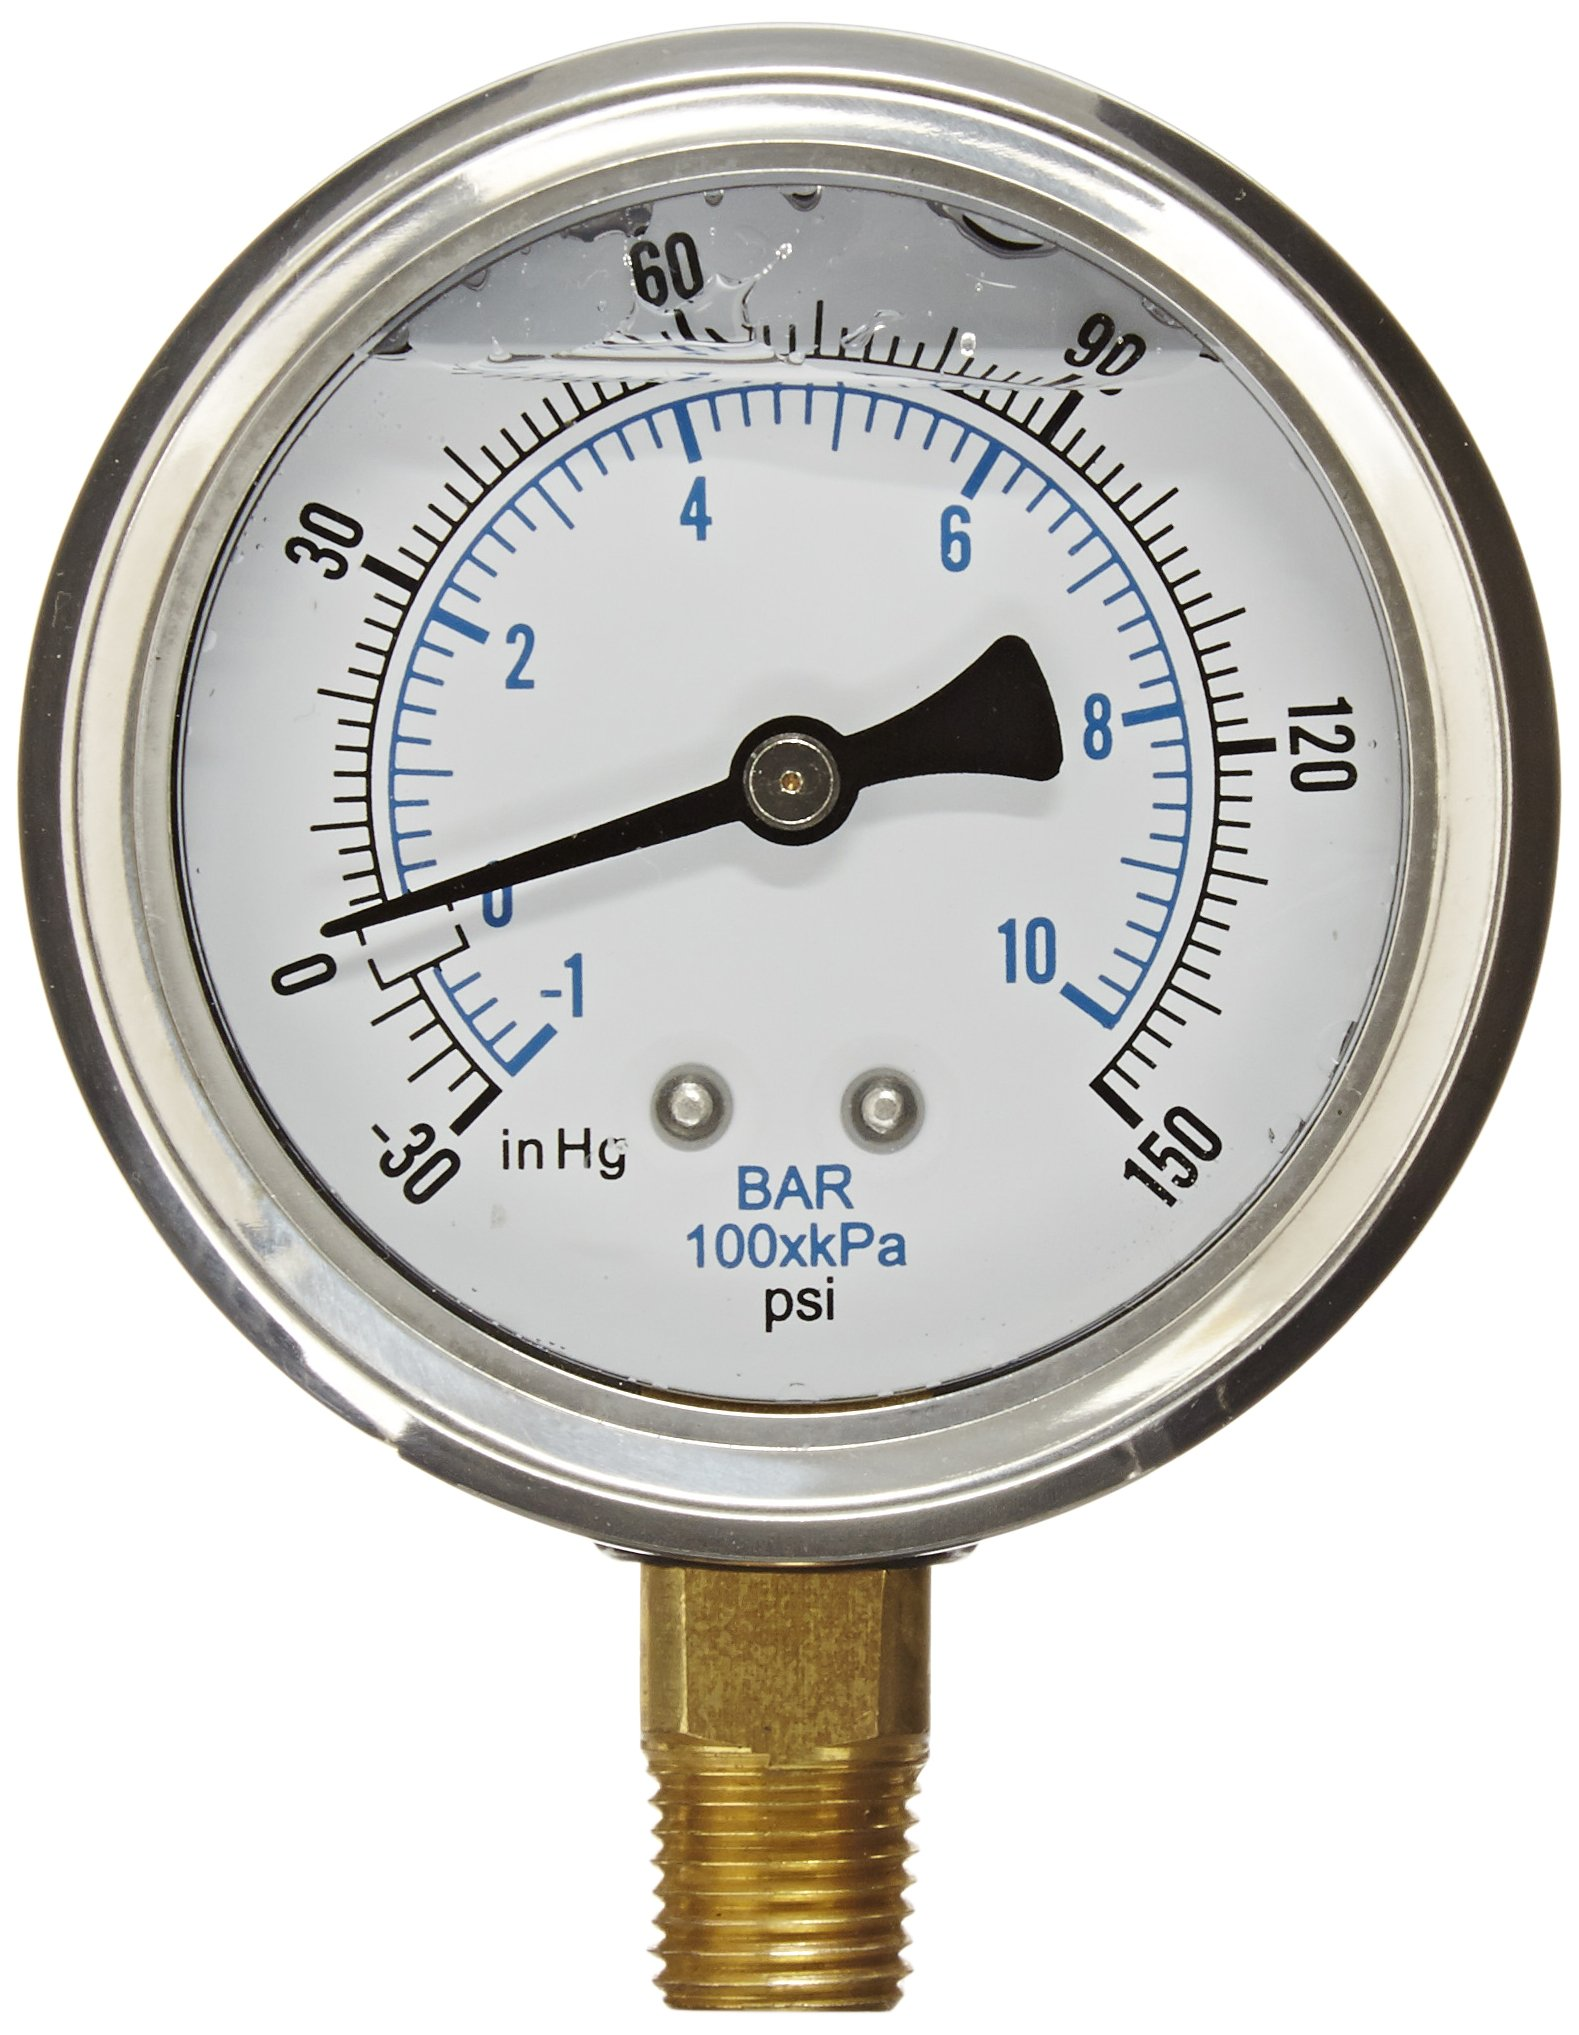 PIC Gauge PRO-201L-254CF Glycerin Filled Industrial Bottom Mount Pressure Gauge with Stainless Steel Case, Brass Internals, Plastic Lens, 2-1/2'' Dial Size, 1/4'' Male NPT, 30/0/150 psi